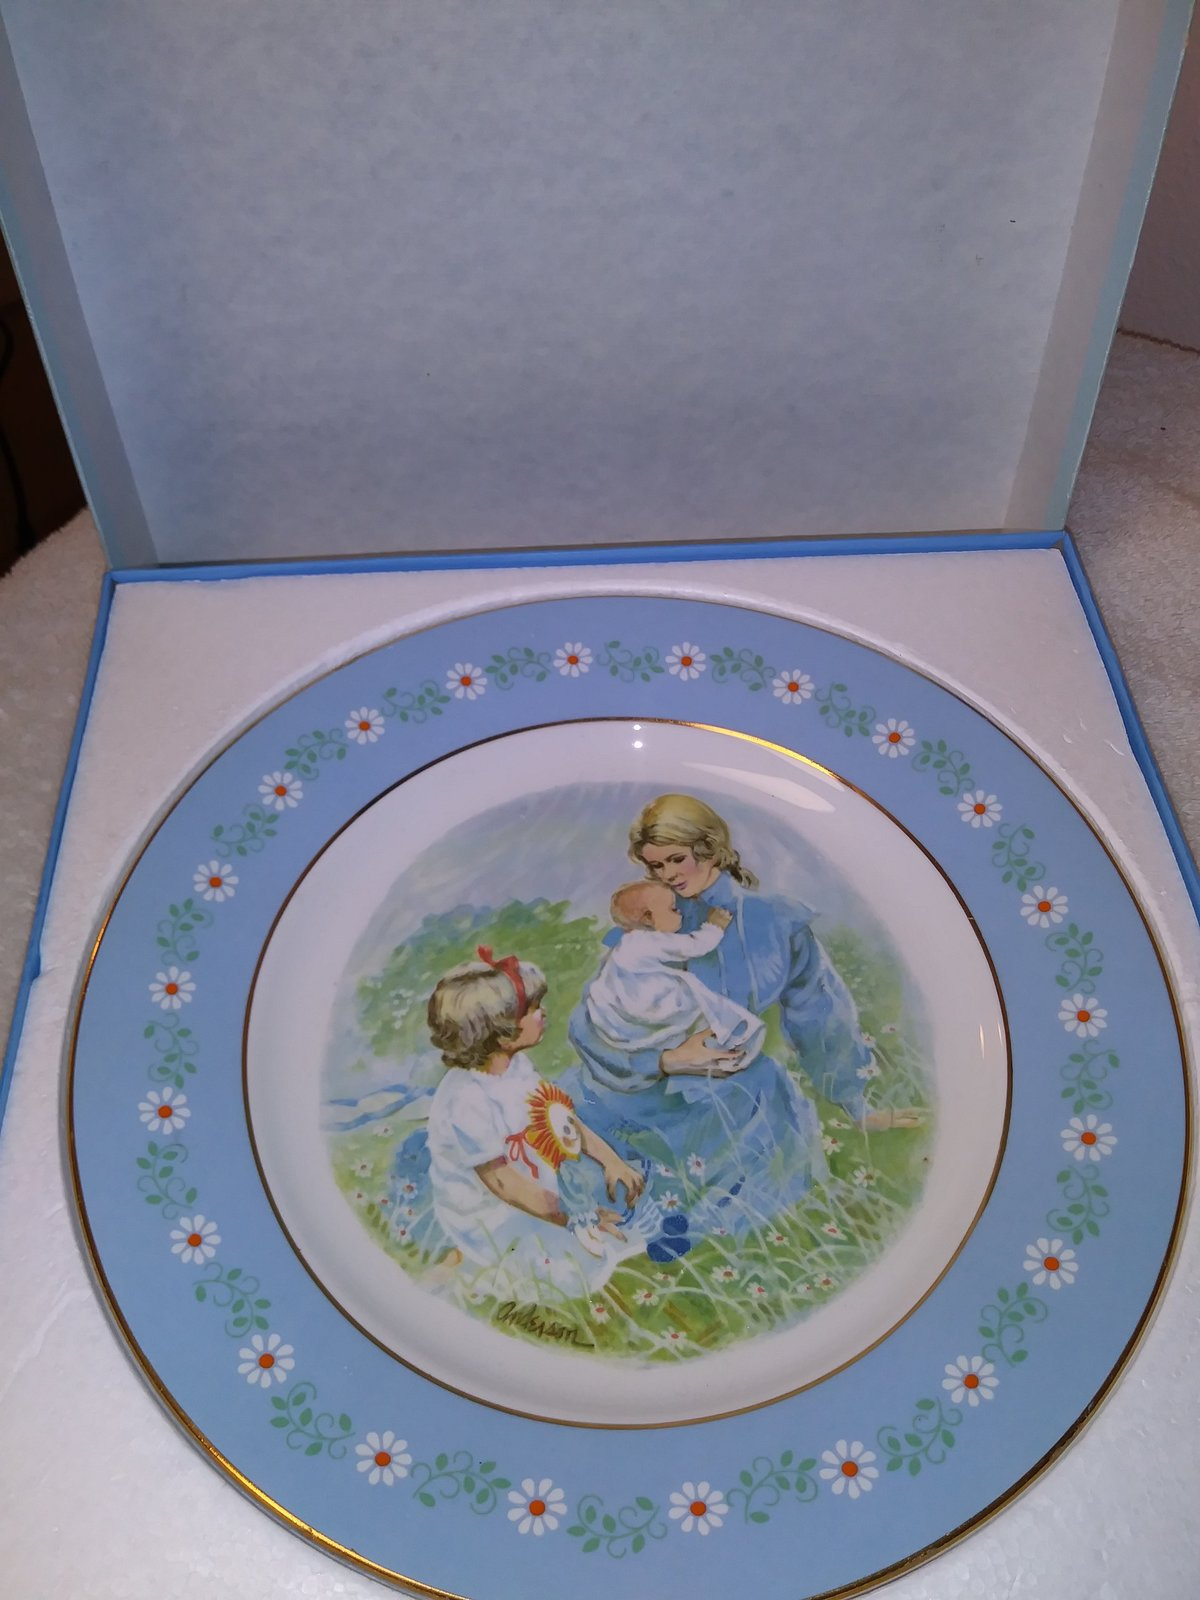 Avon Tenderness Commemorative Plate Special Edition selling for Mother's Day,197